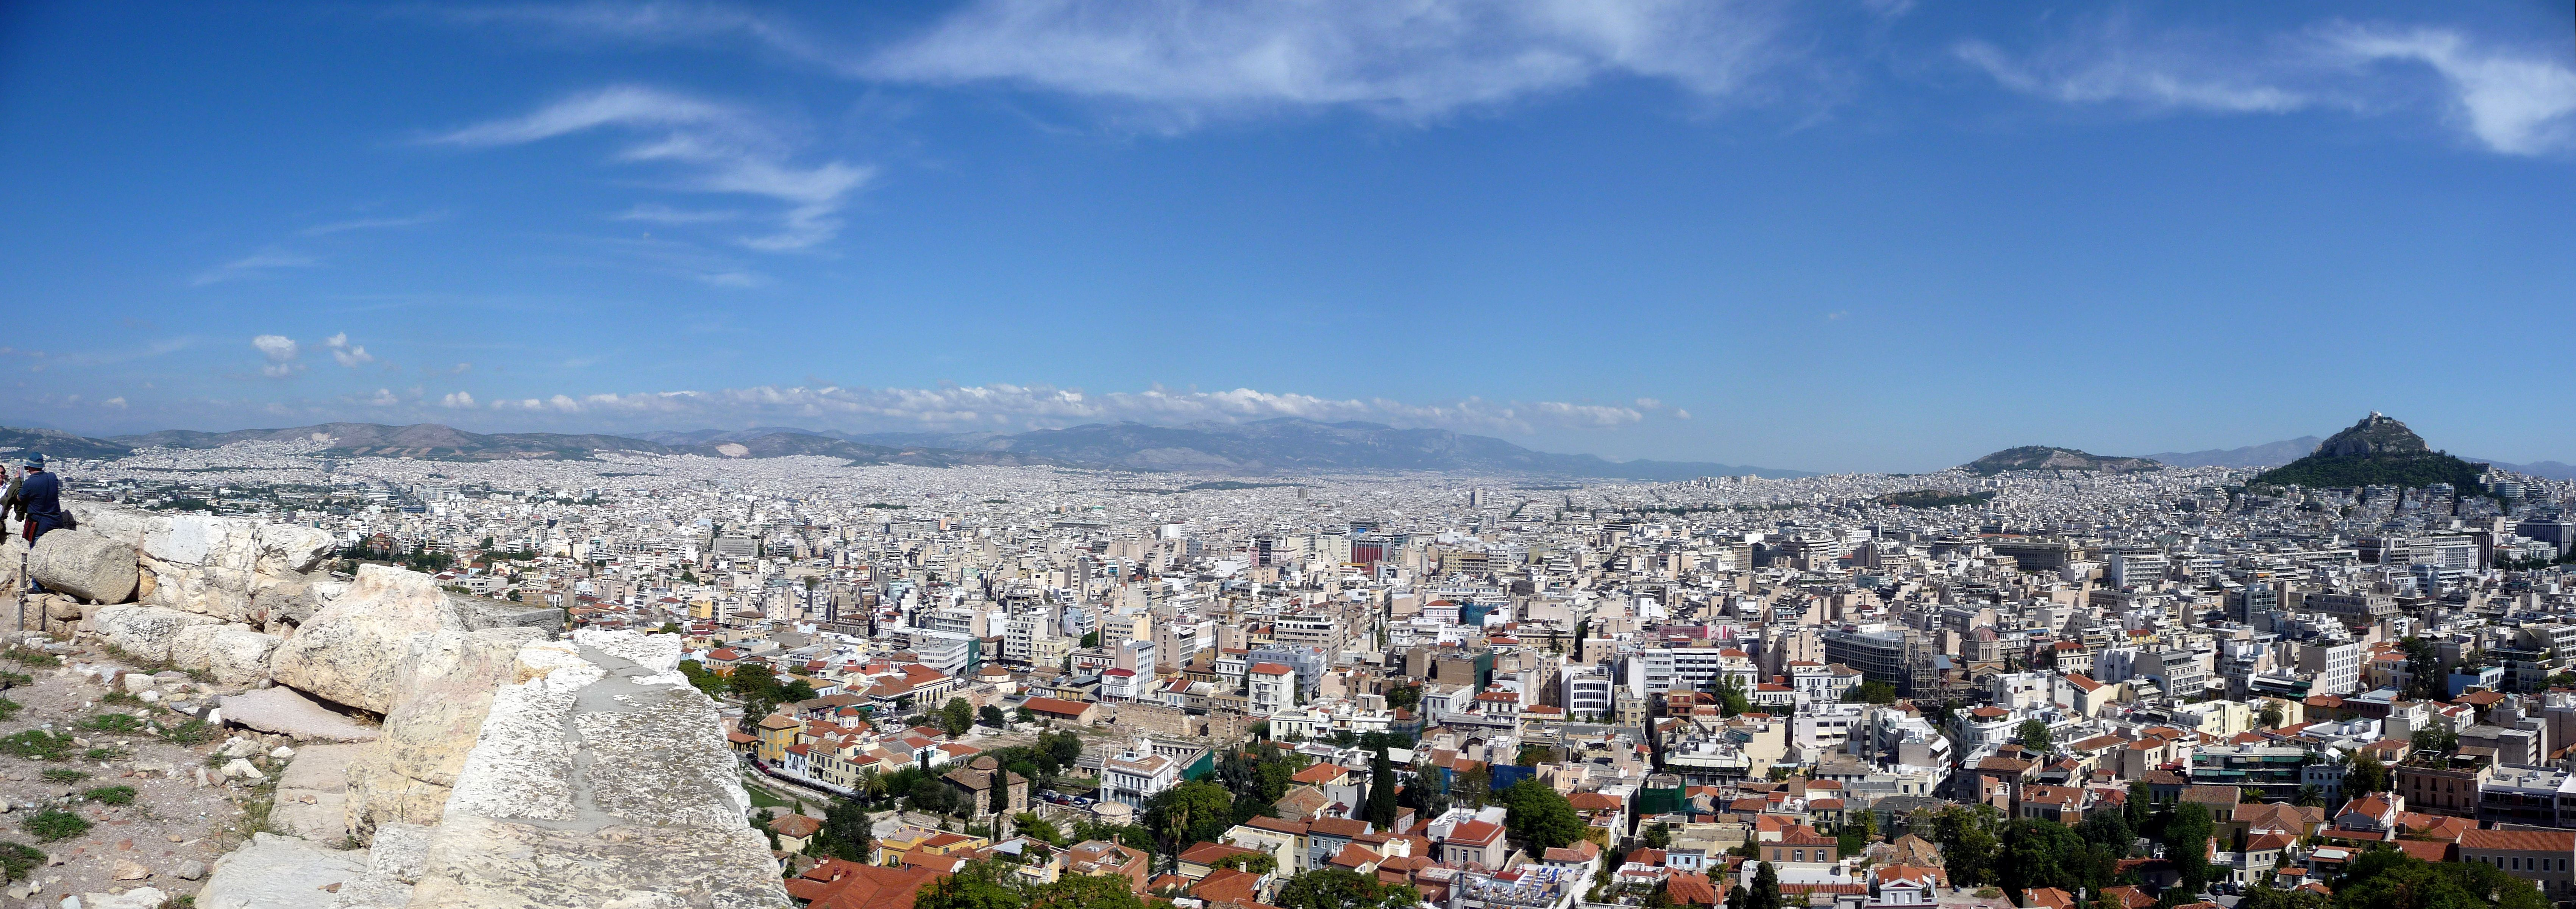 small-hold-al-athens